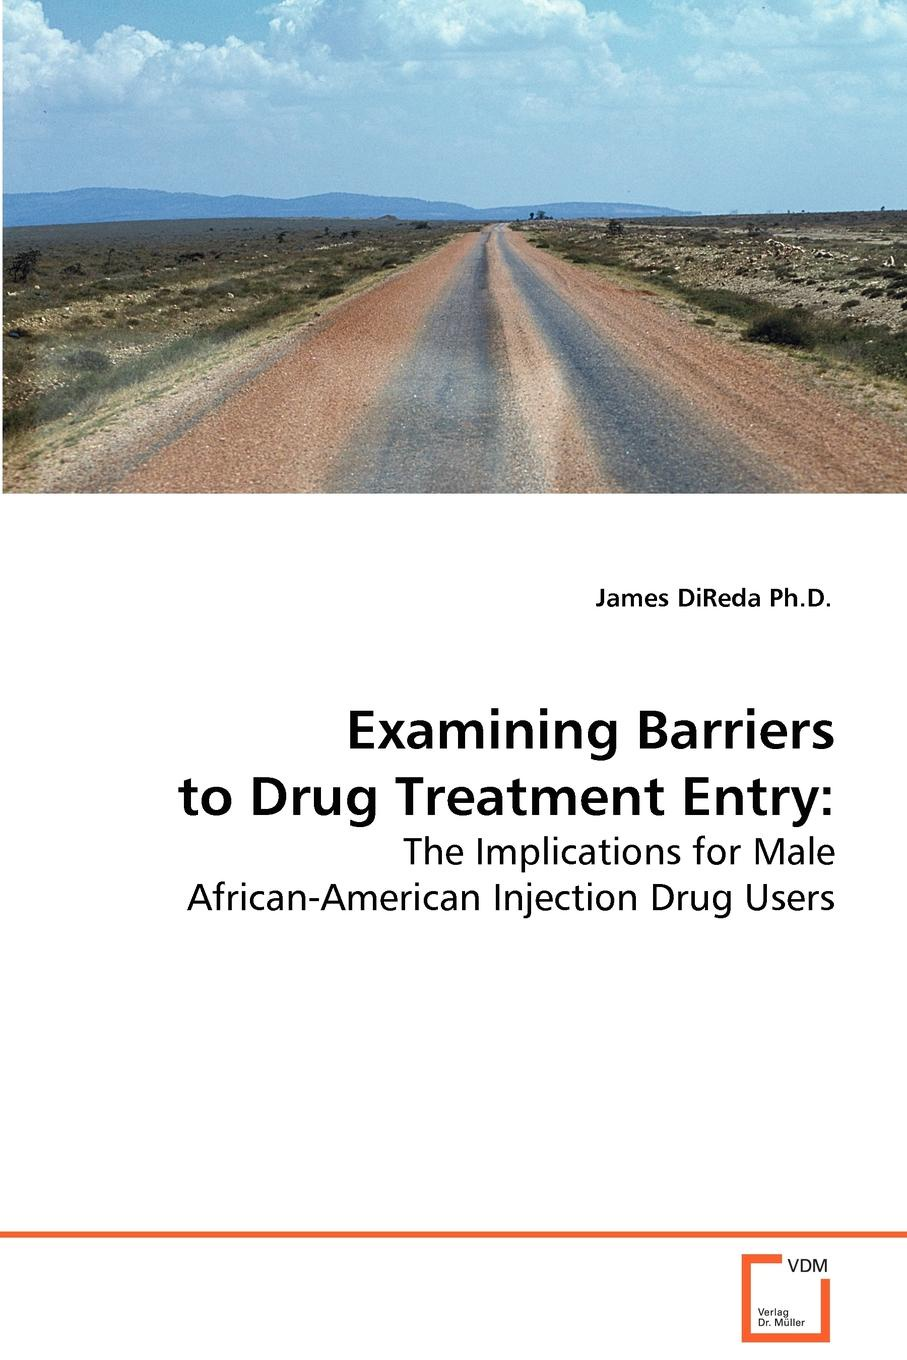 James DiReda Examining Barriers to Drug Treatment Entry door entry systems